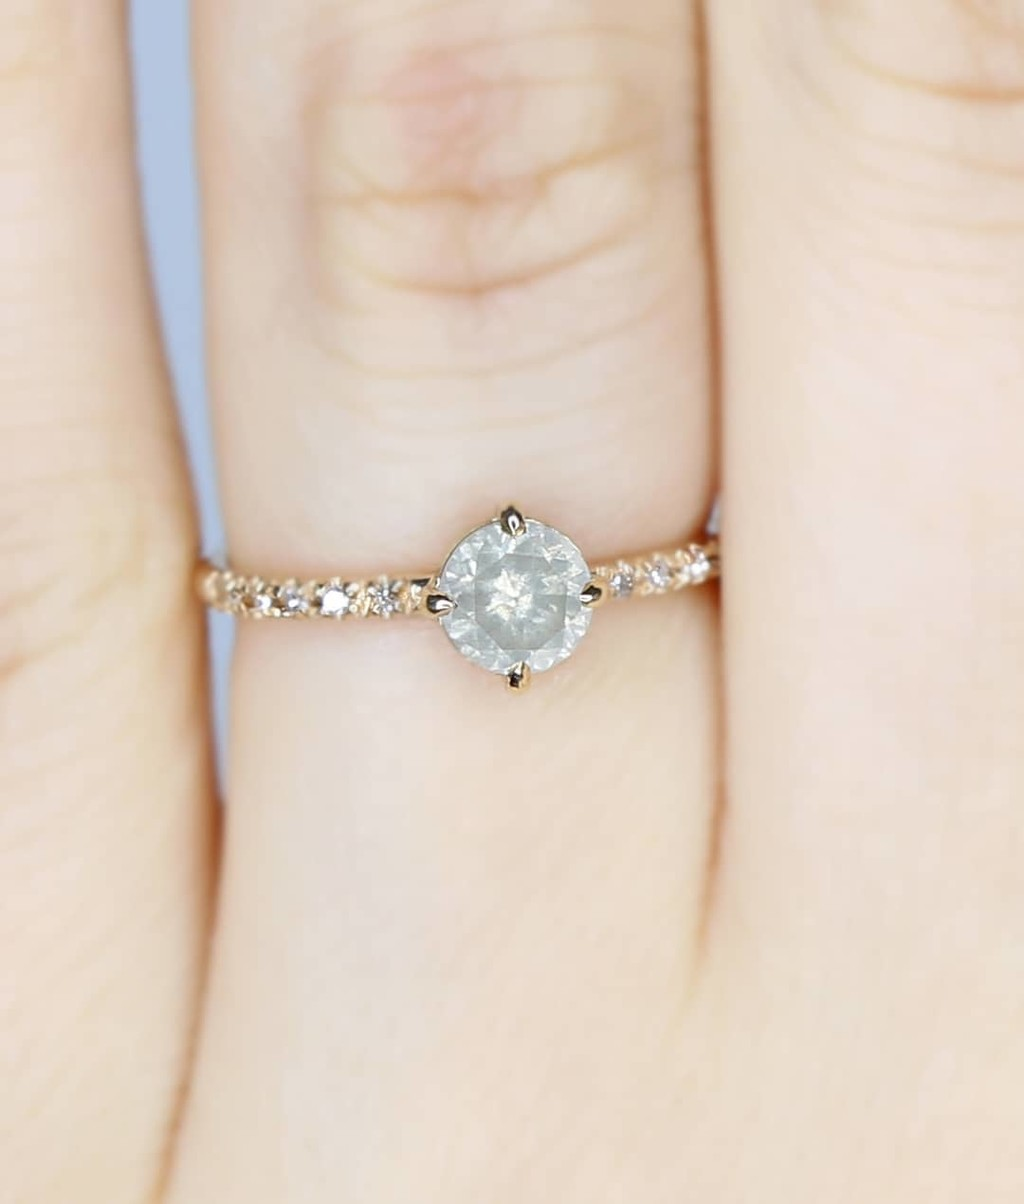 Really feeling our unique ethically sourced diamonds like this gem 💎✨💫 Jacob found this GIA post-consumer recycled Grey Diamond